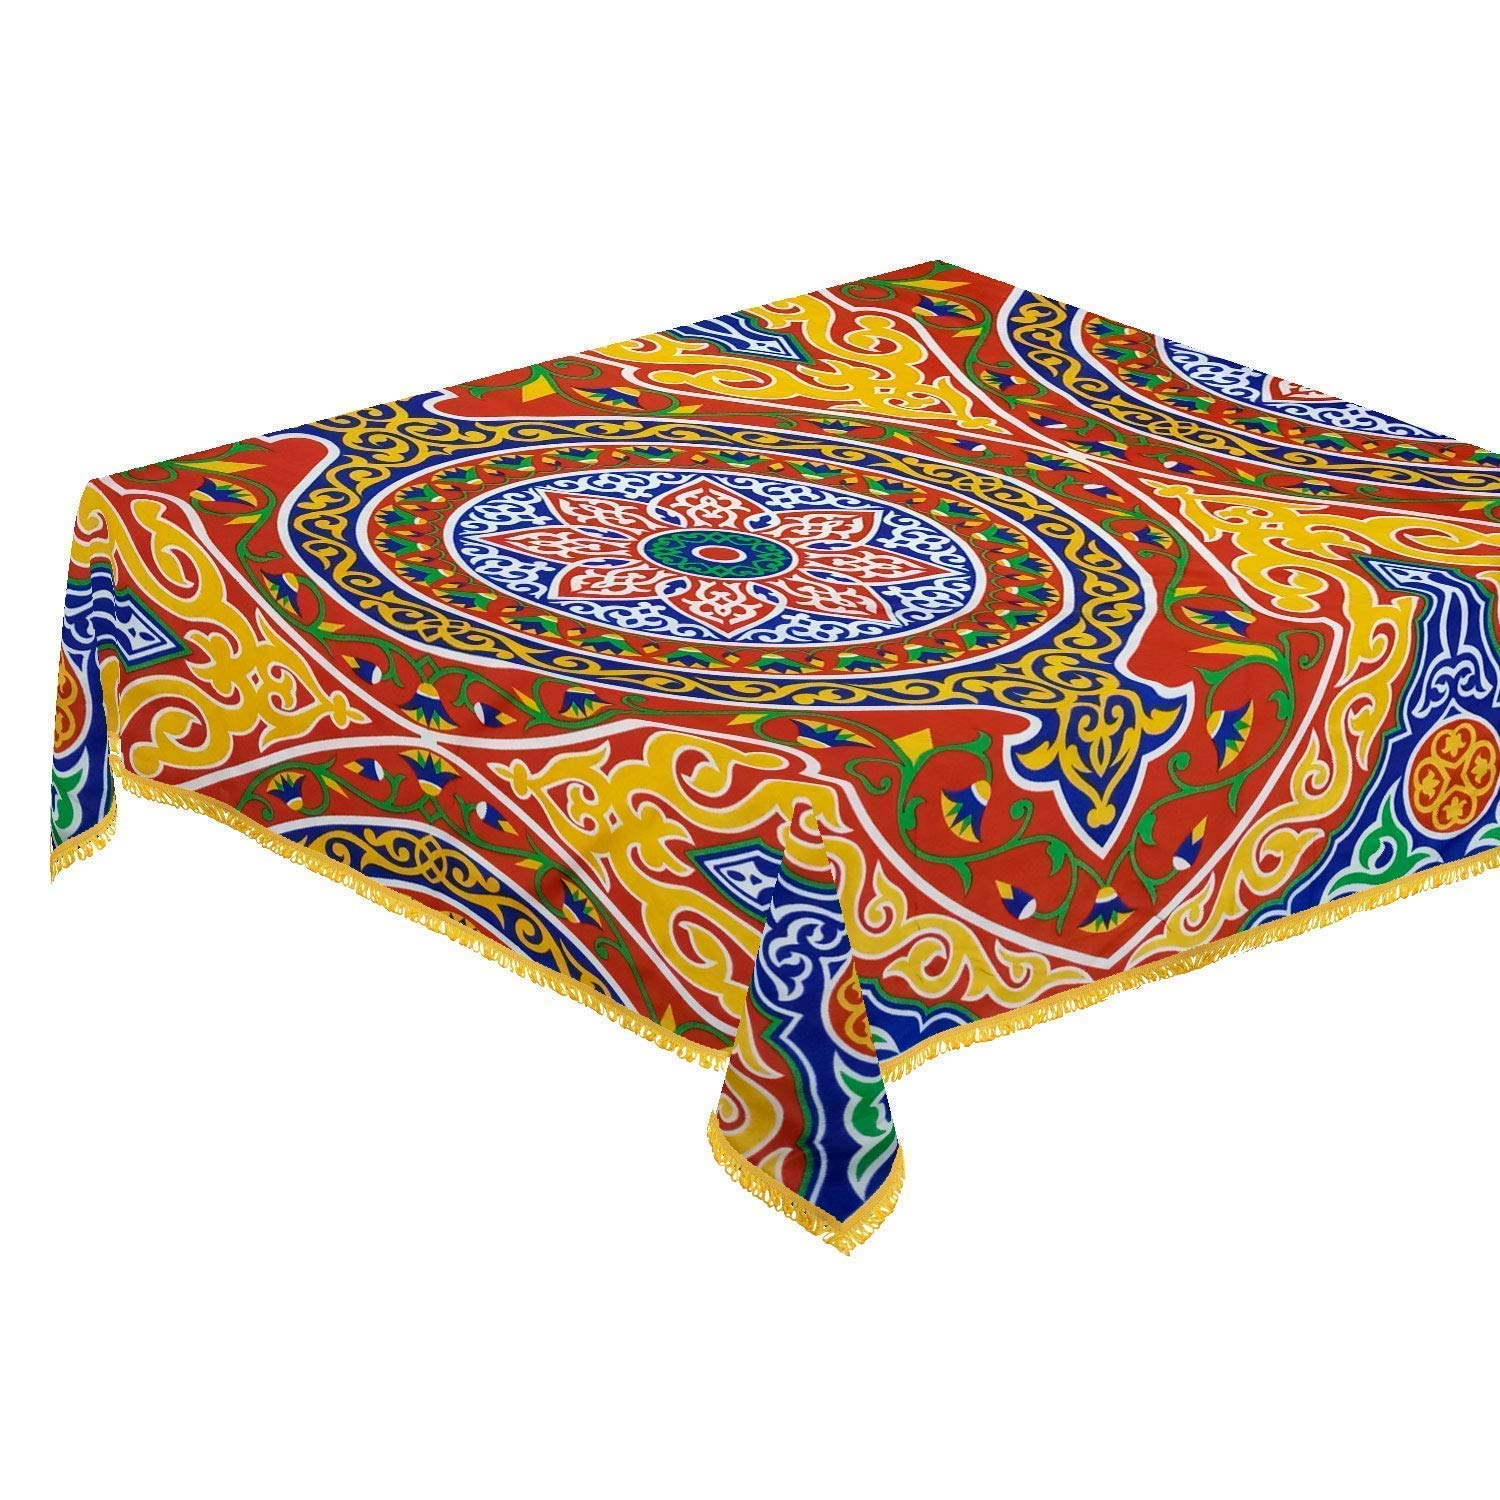 CraftiEgypt Egyptian Ramadan Decorations Decorative Colorful Red Printed Khayamiya Pattern Cotton Polyester Tablecloth Table Cloth Cover Top Dining Room Kitchen Square 55 Inches